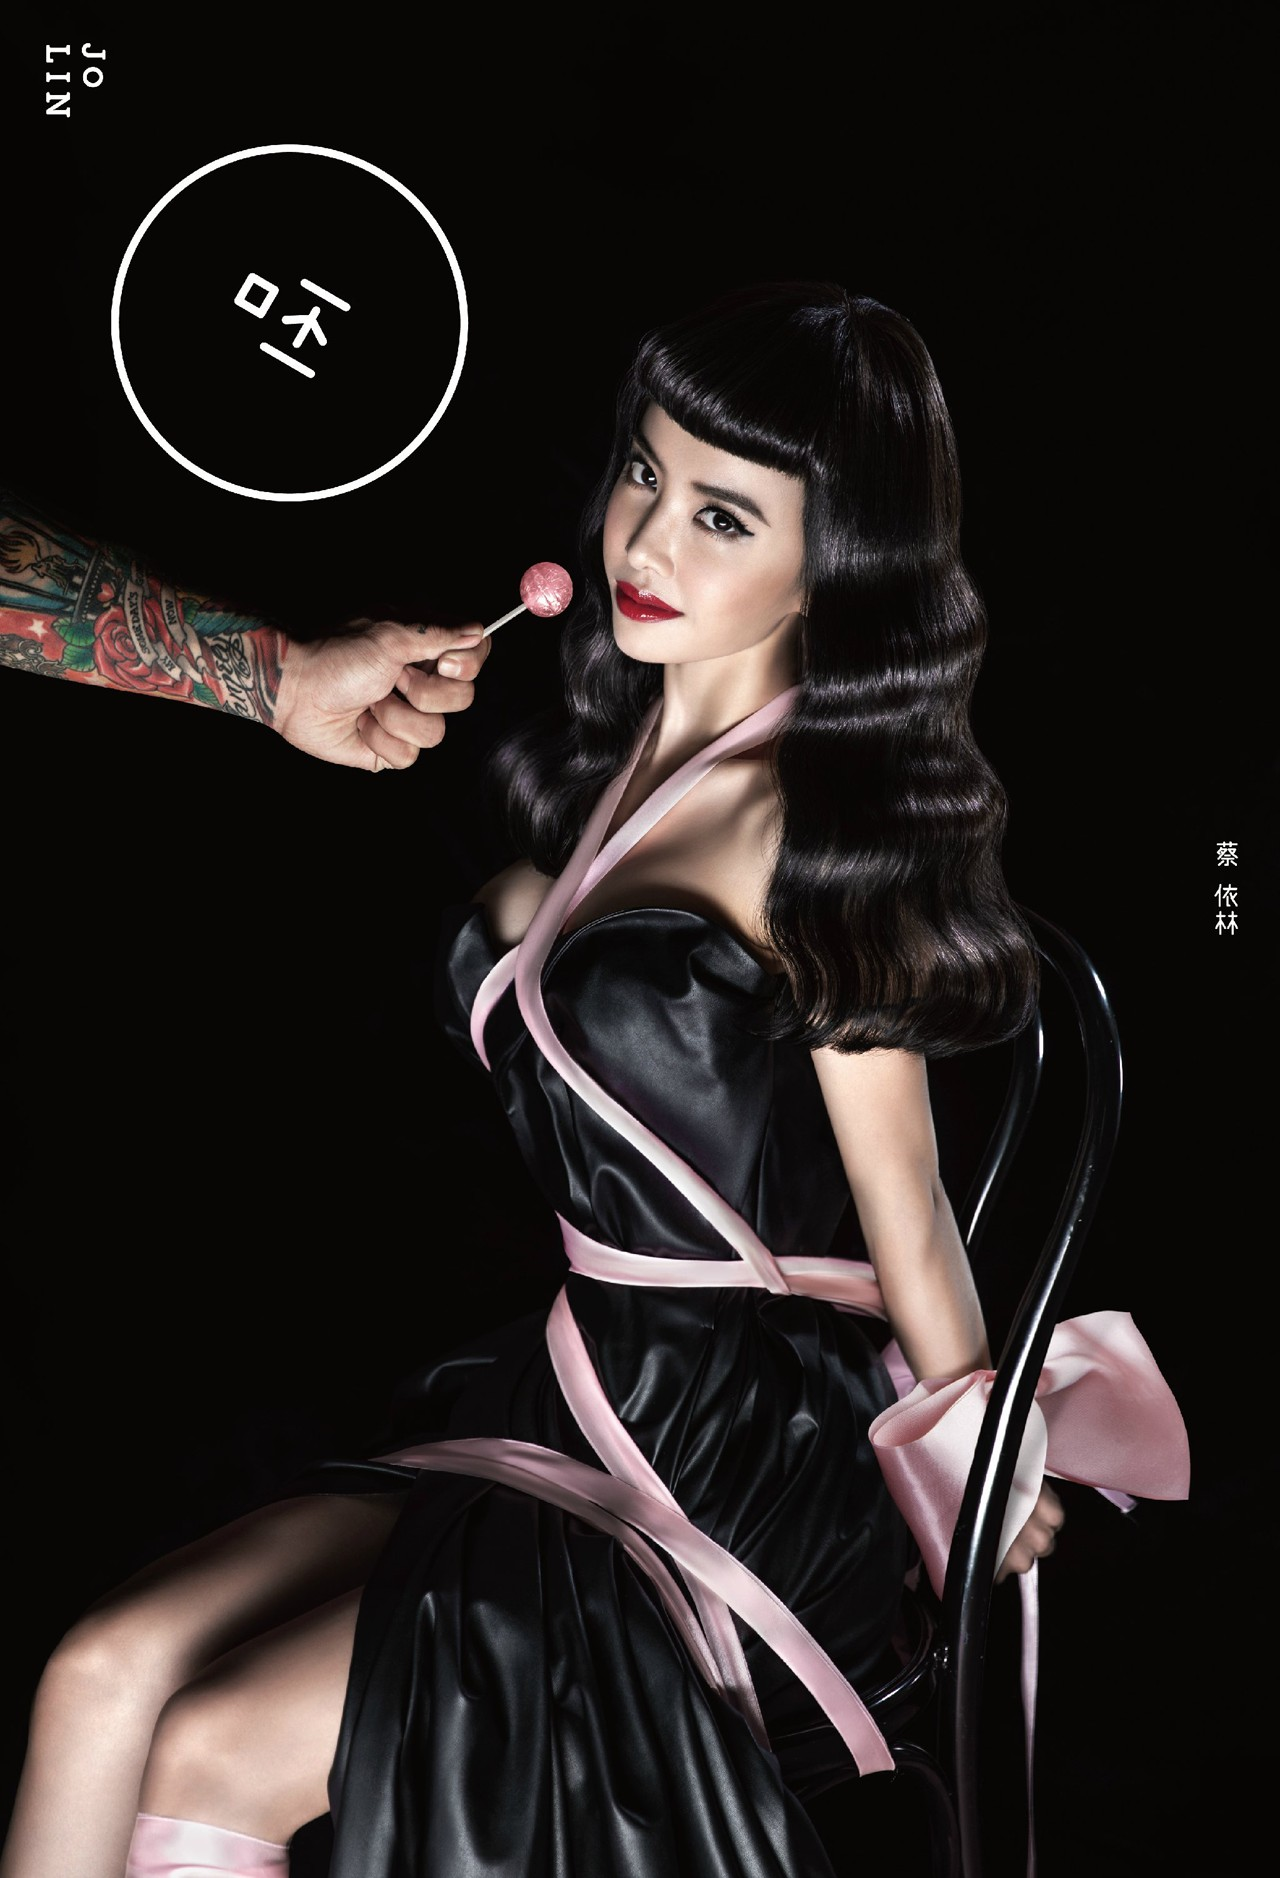 蔡依林 (Jolin Tsai) – 呸 [FLAC / 24bit Lossless / WEB] [2014.11.14]